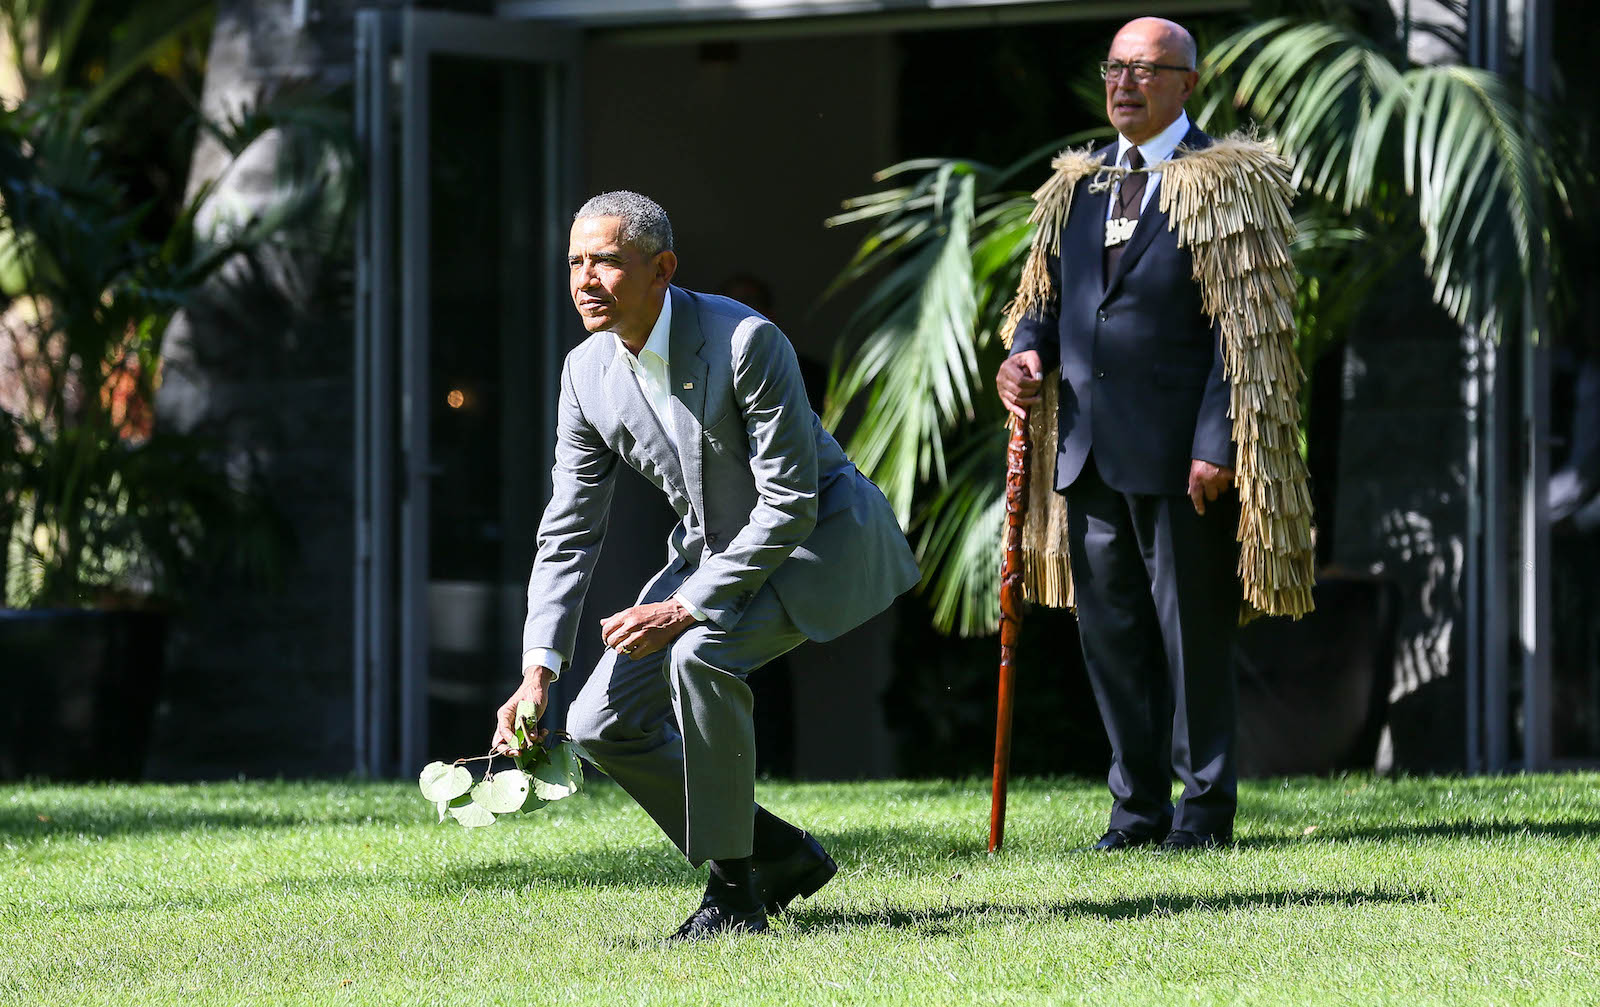 Barack Obama attends a powhiri at Government House on March 22, 2018 in Auckland, New Zealand.